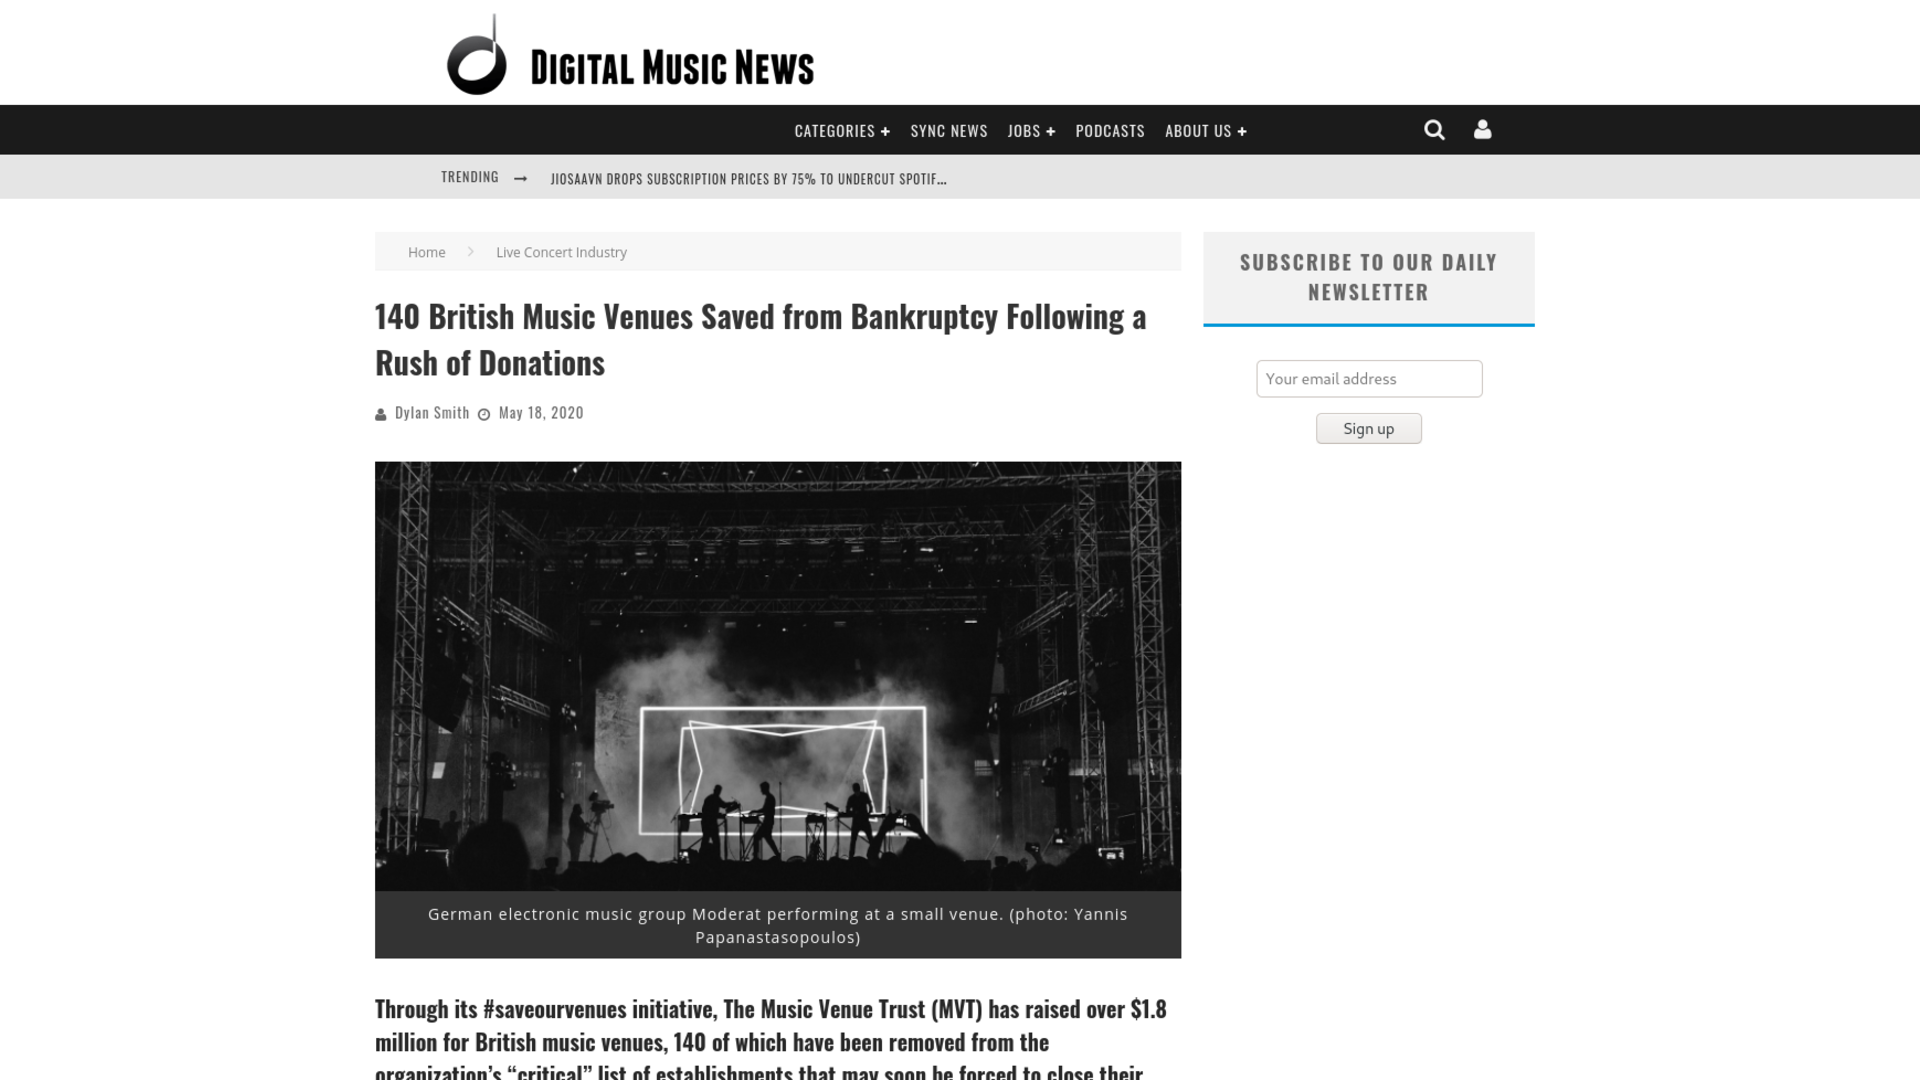 Fairness Rocks News 140 British Music Venues Saved from Bankruptcy Following a Rush of Donations